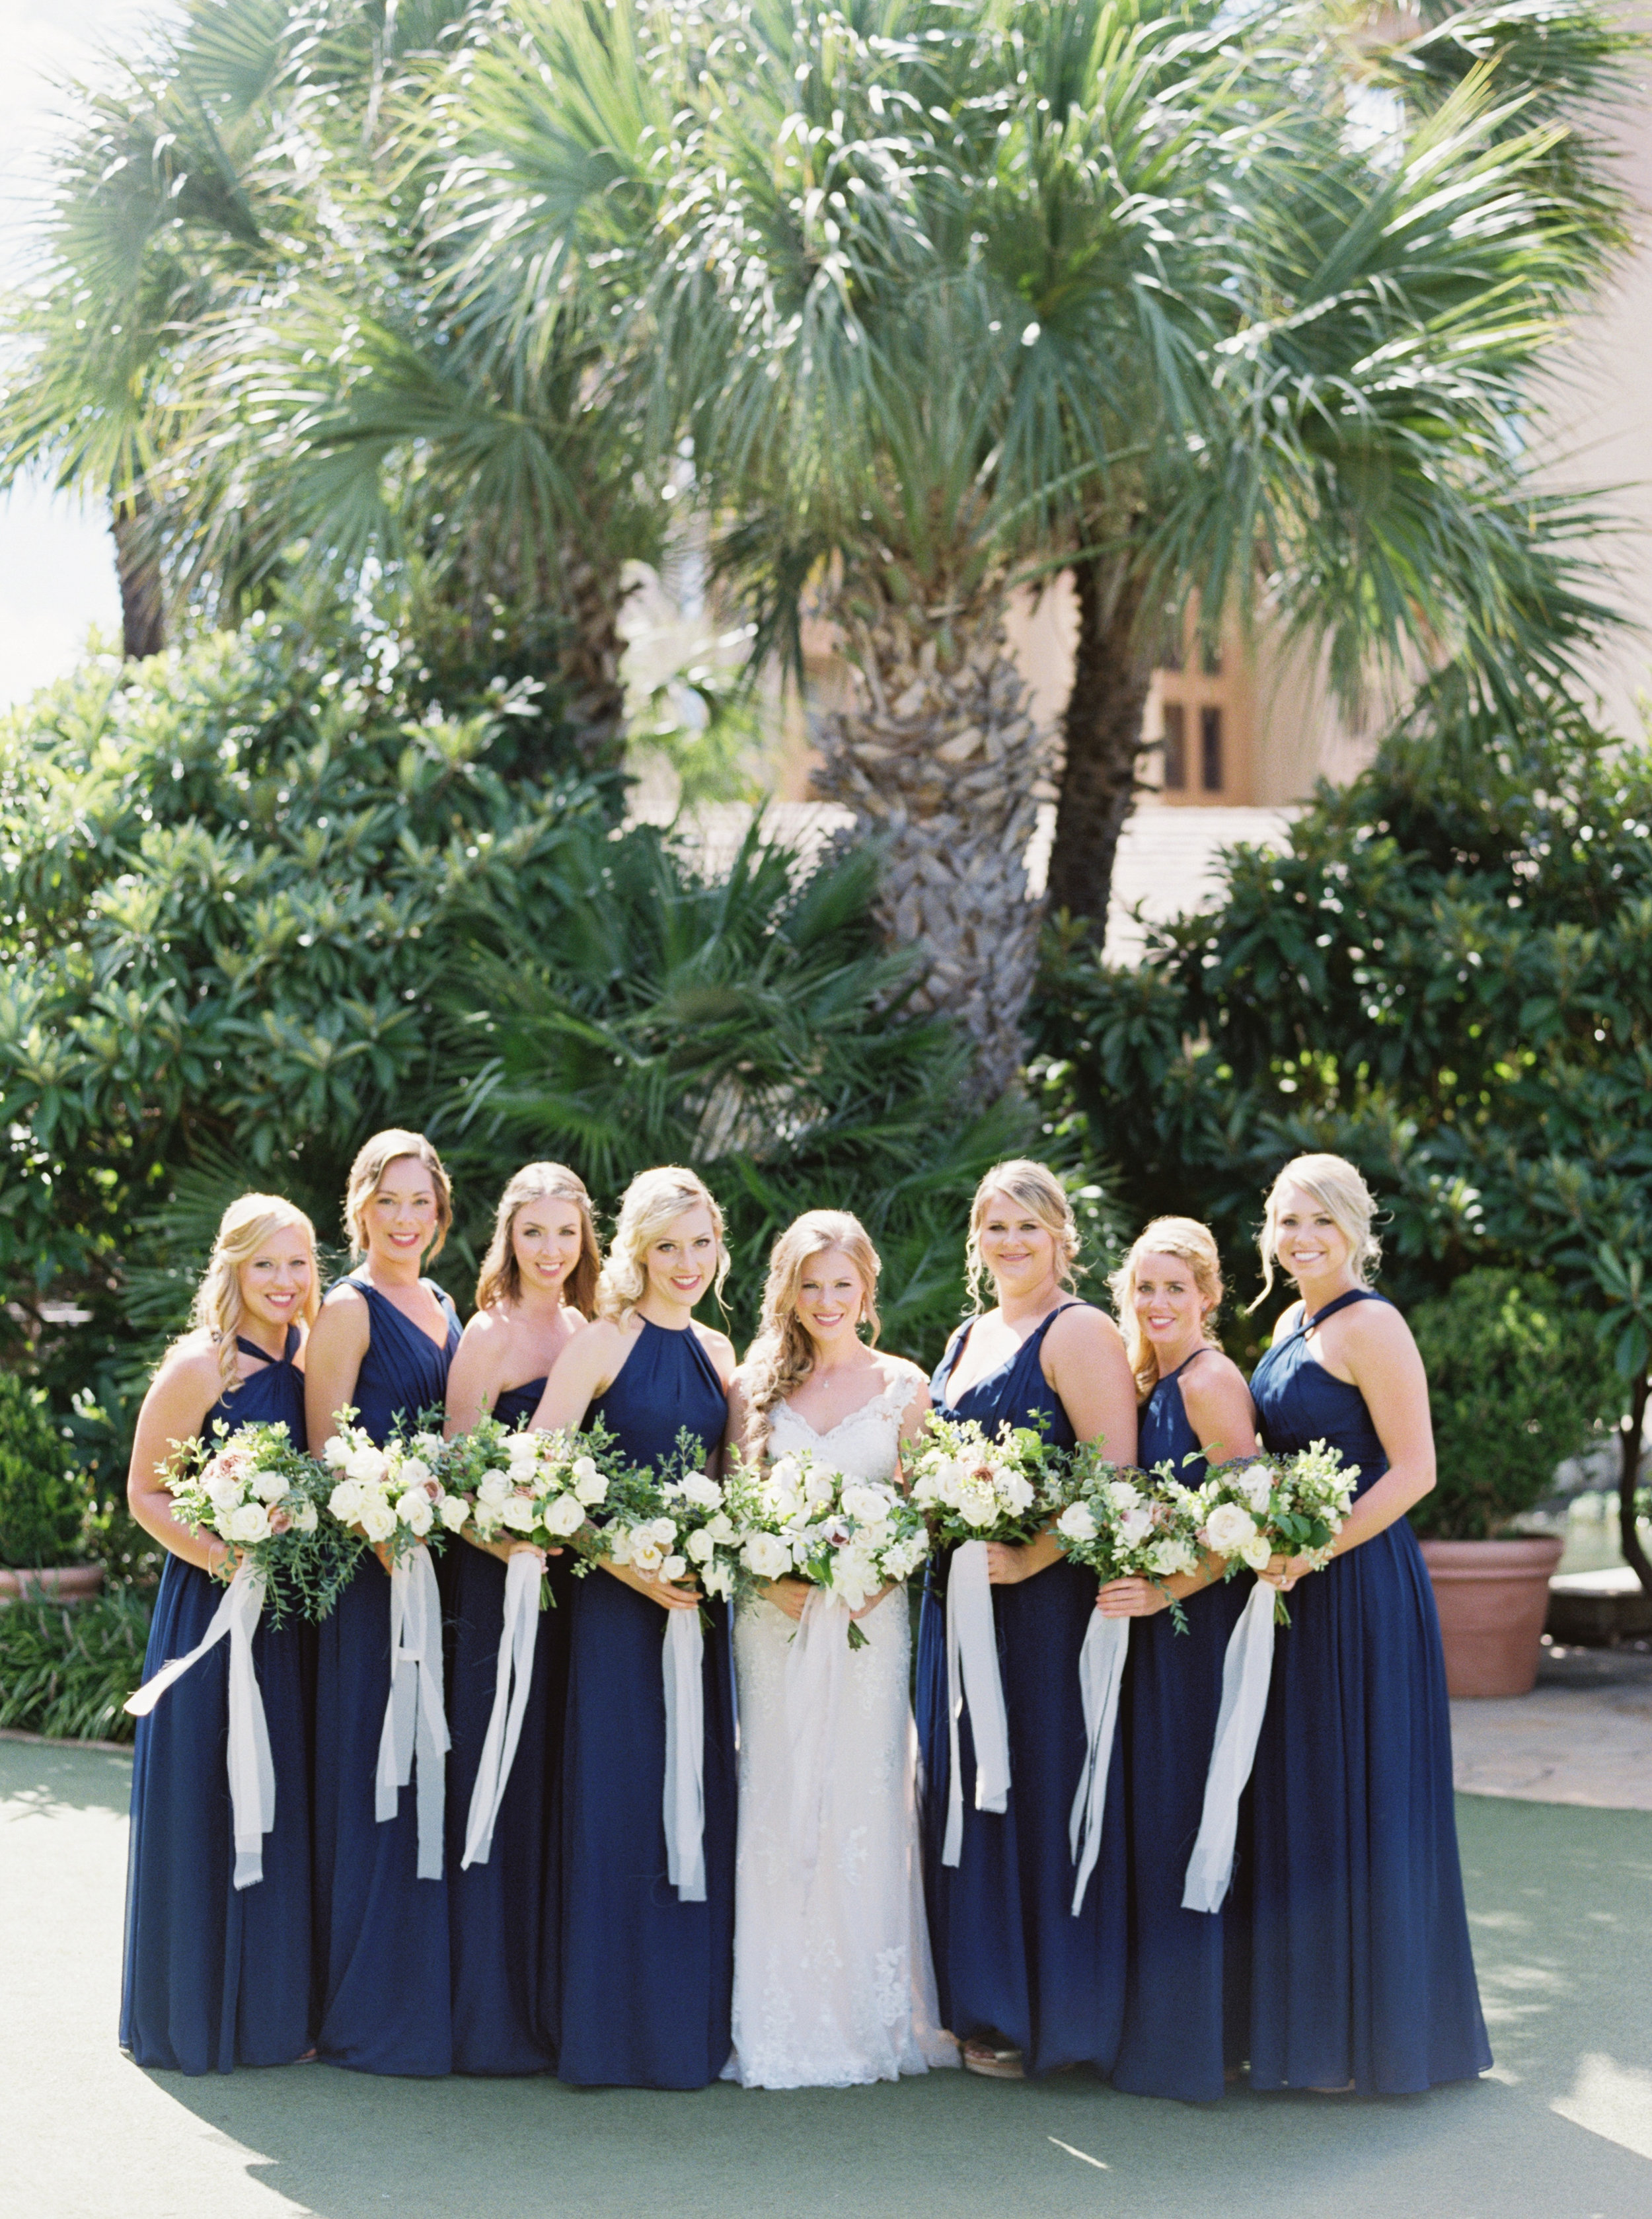 Austin Bride and Bridesmaids with Bouquets